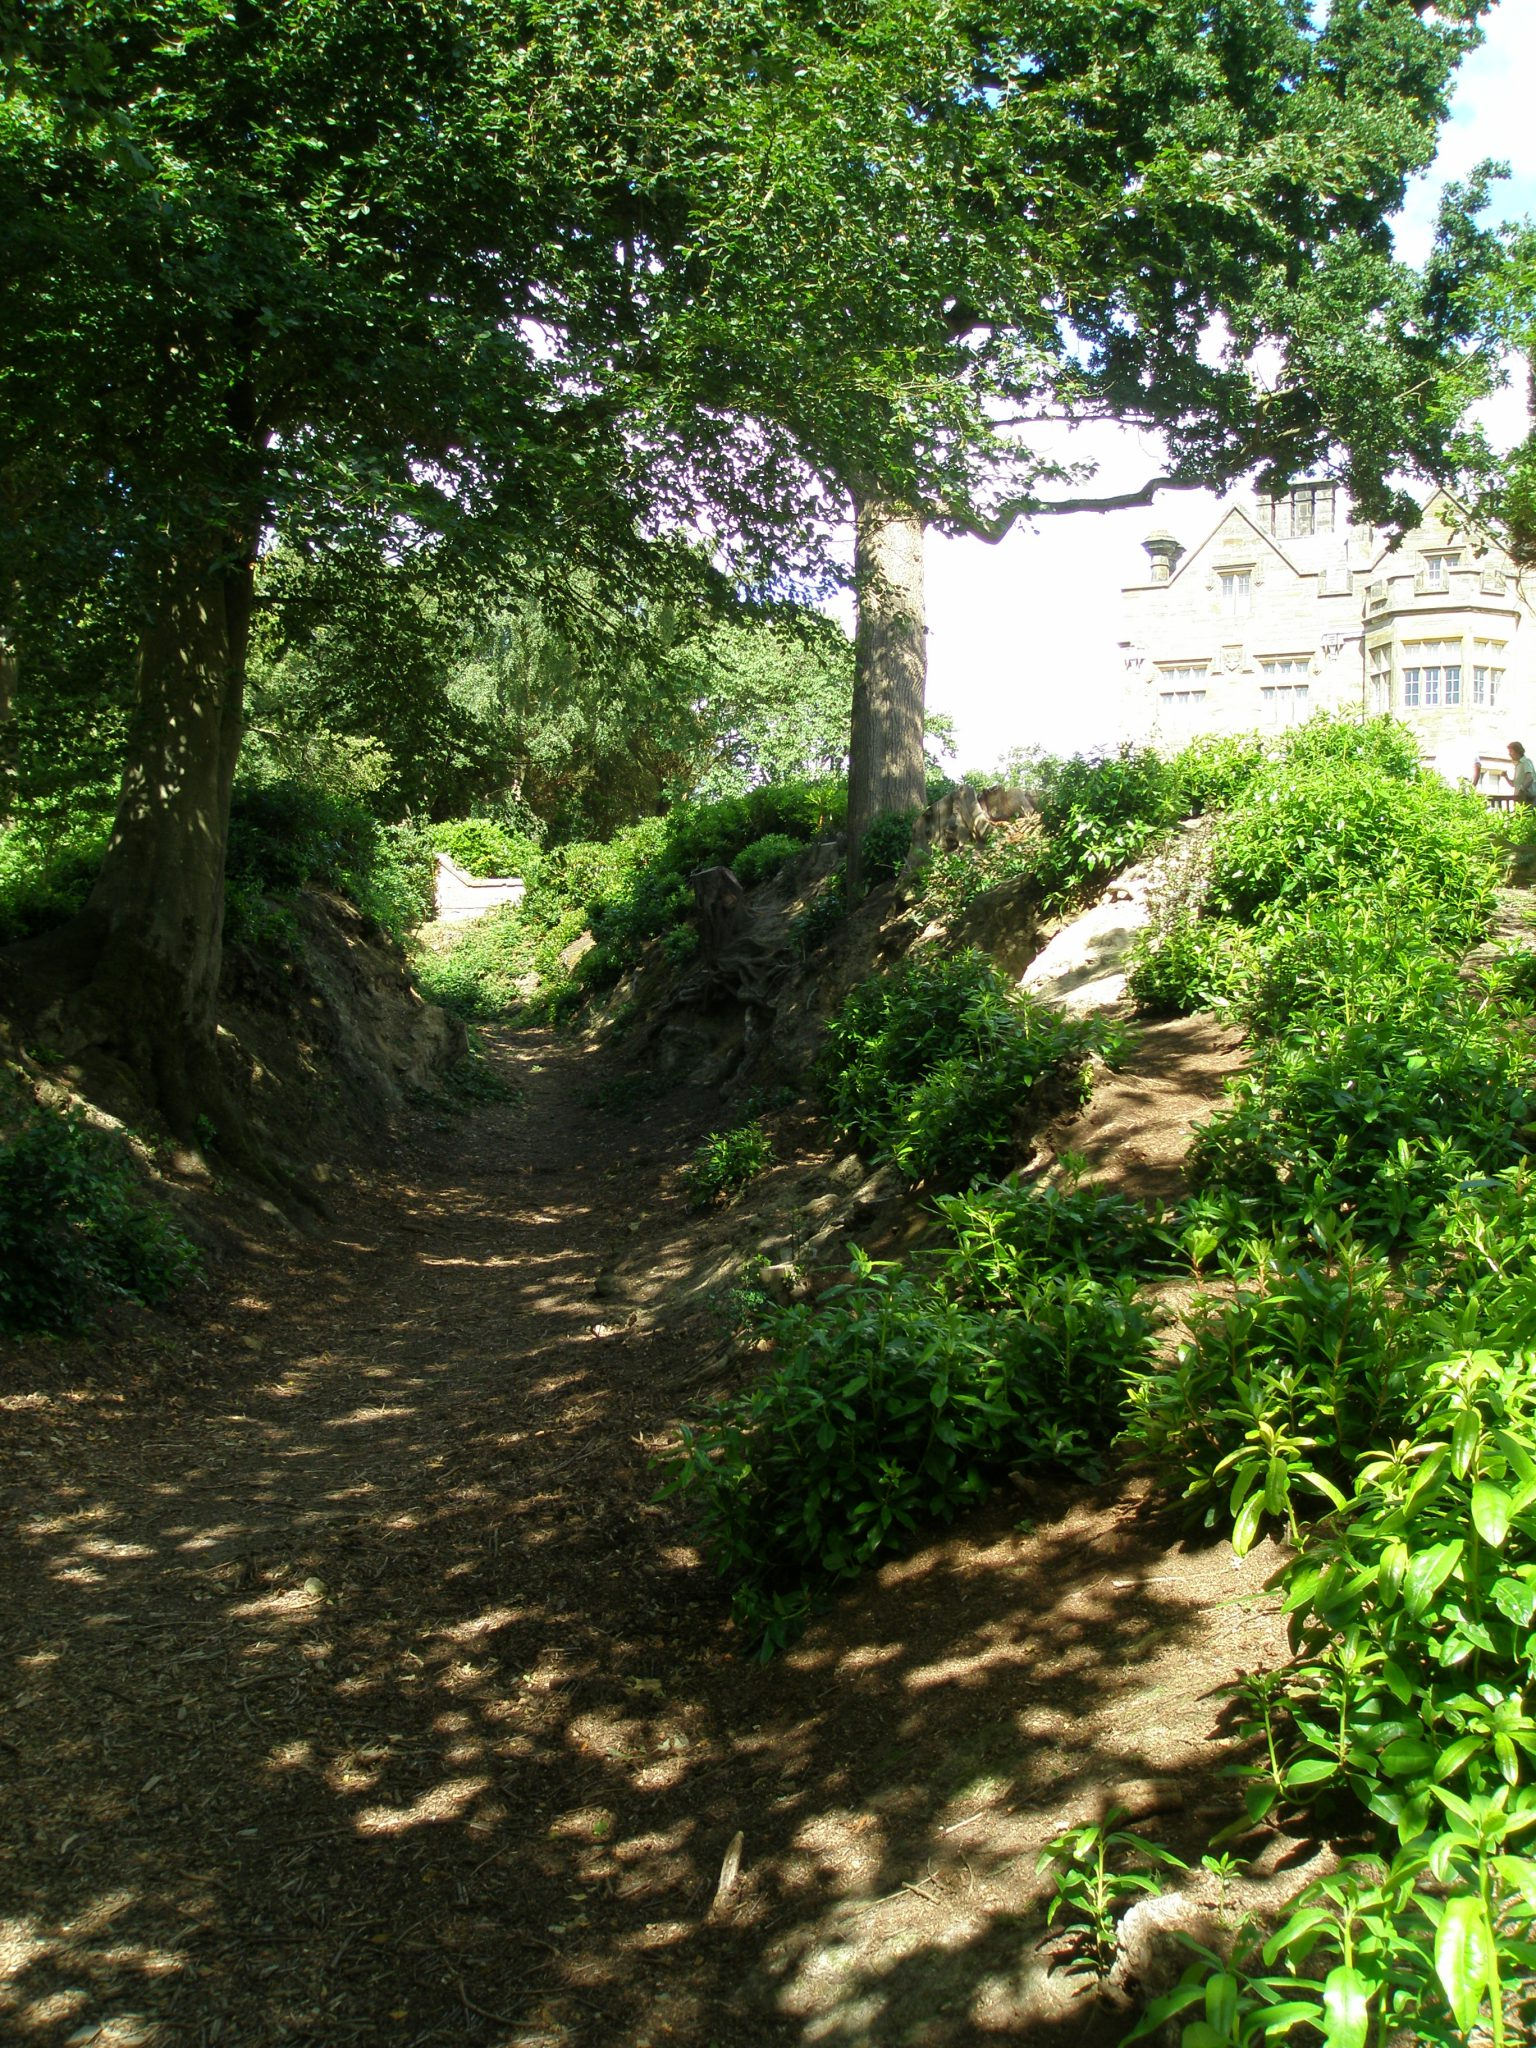 Ancient Drovers' Road, with the New House in the background.